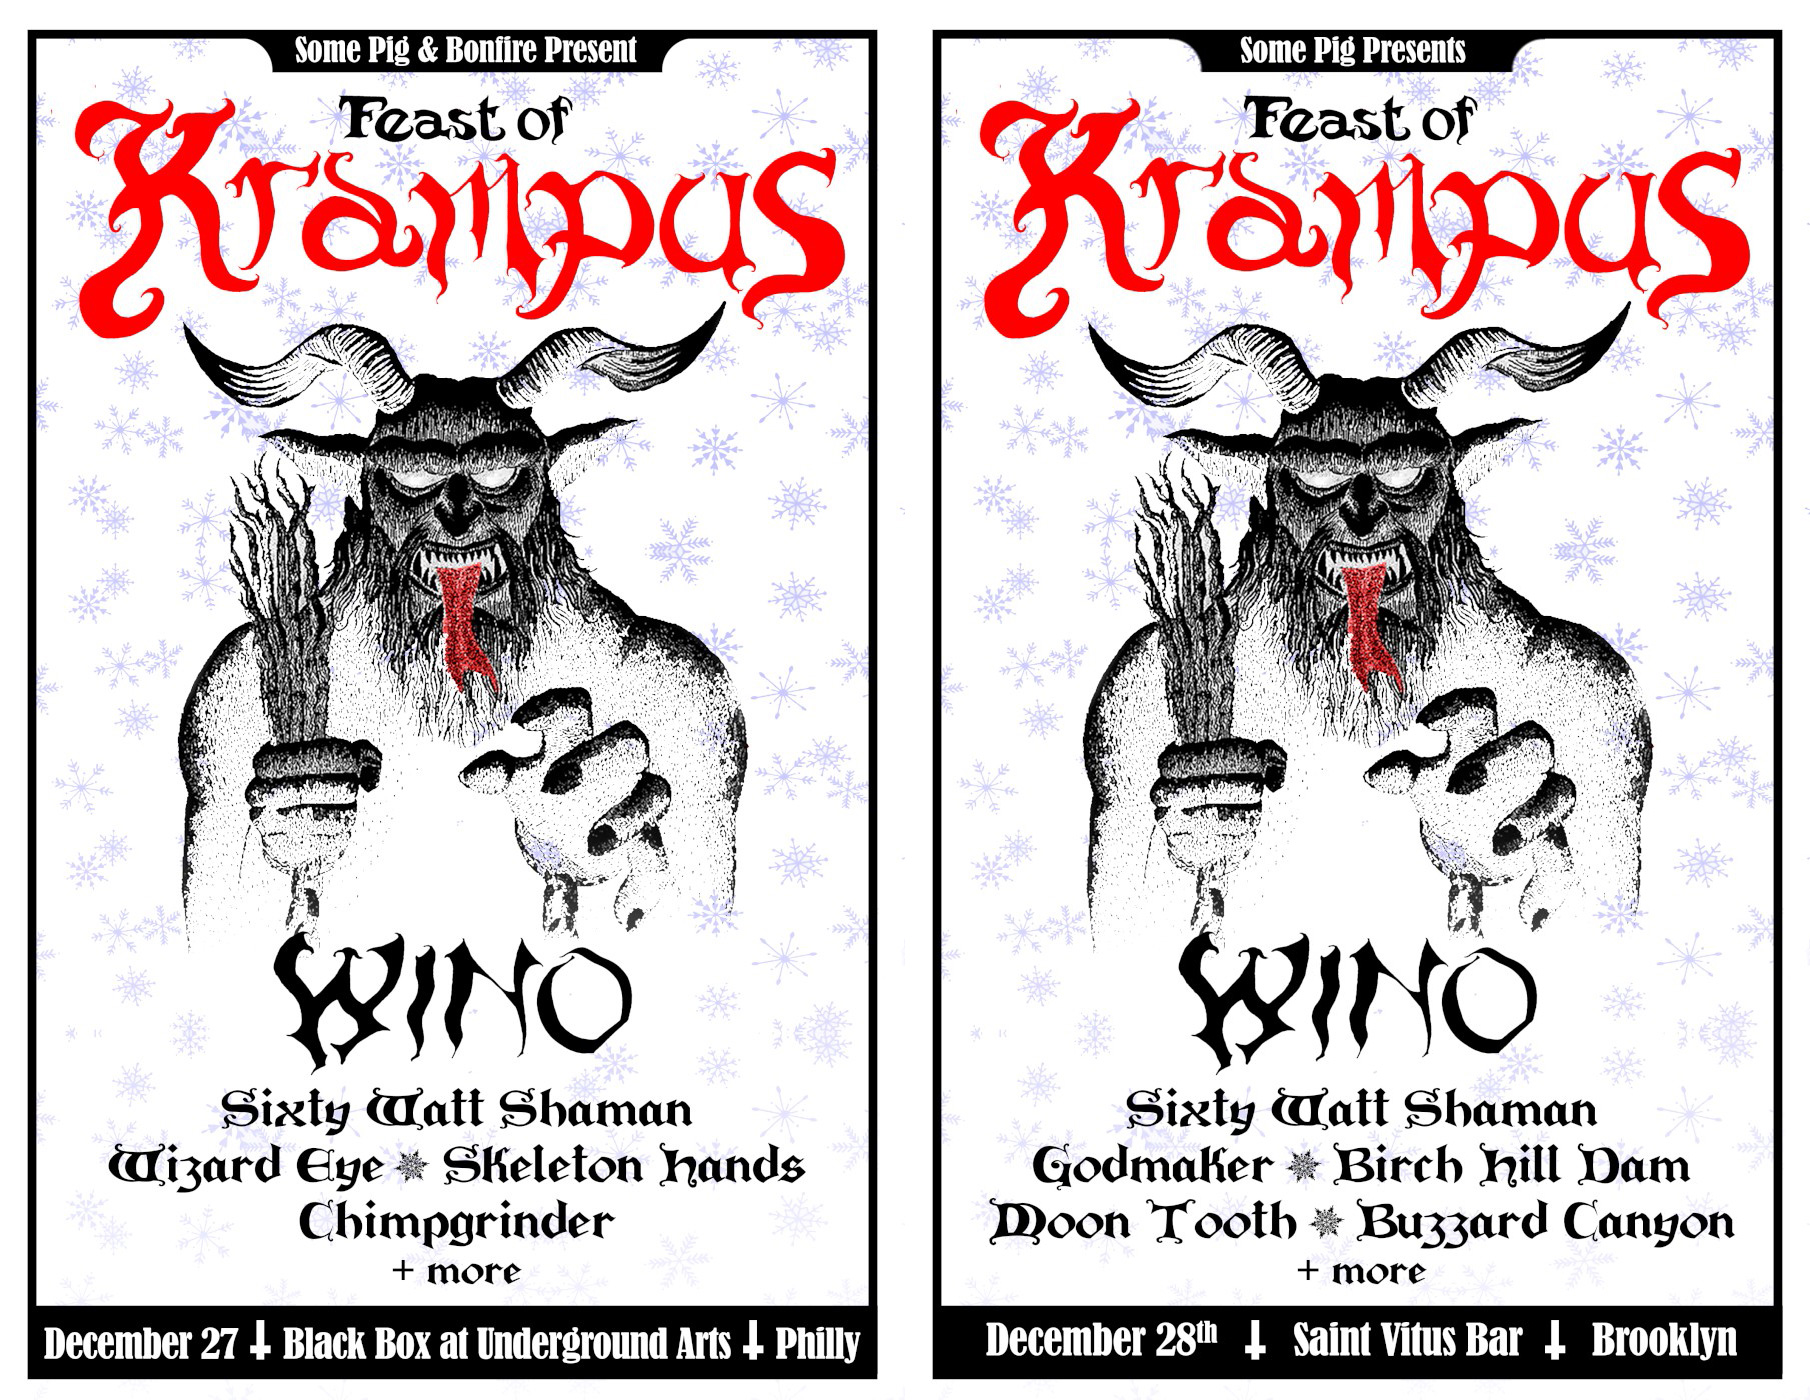 feast-of-krampus-philly-brooklyn